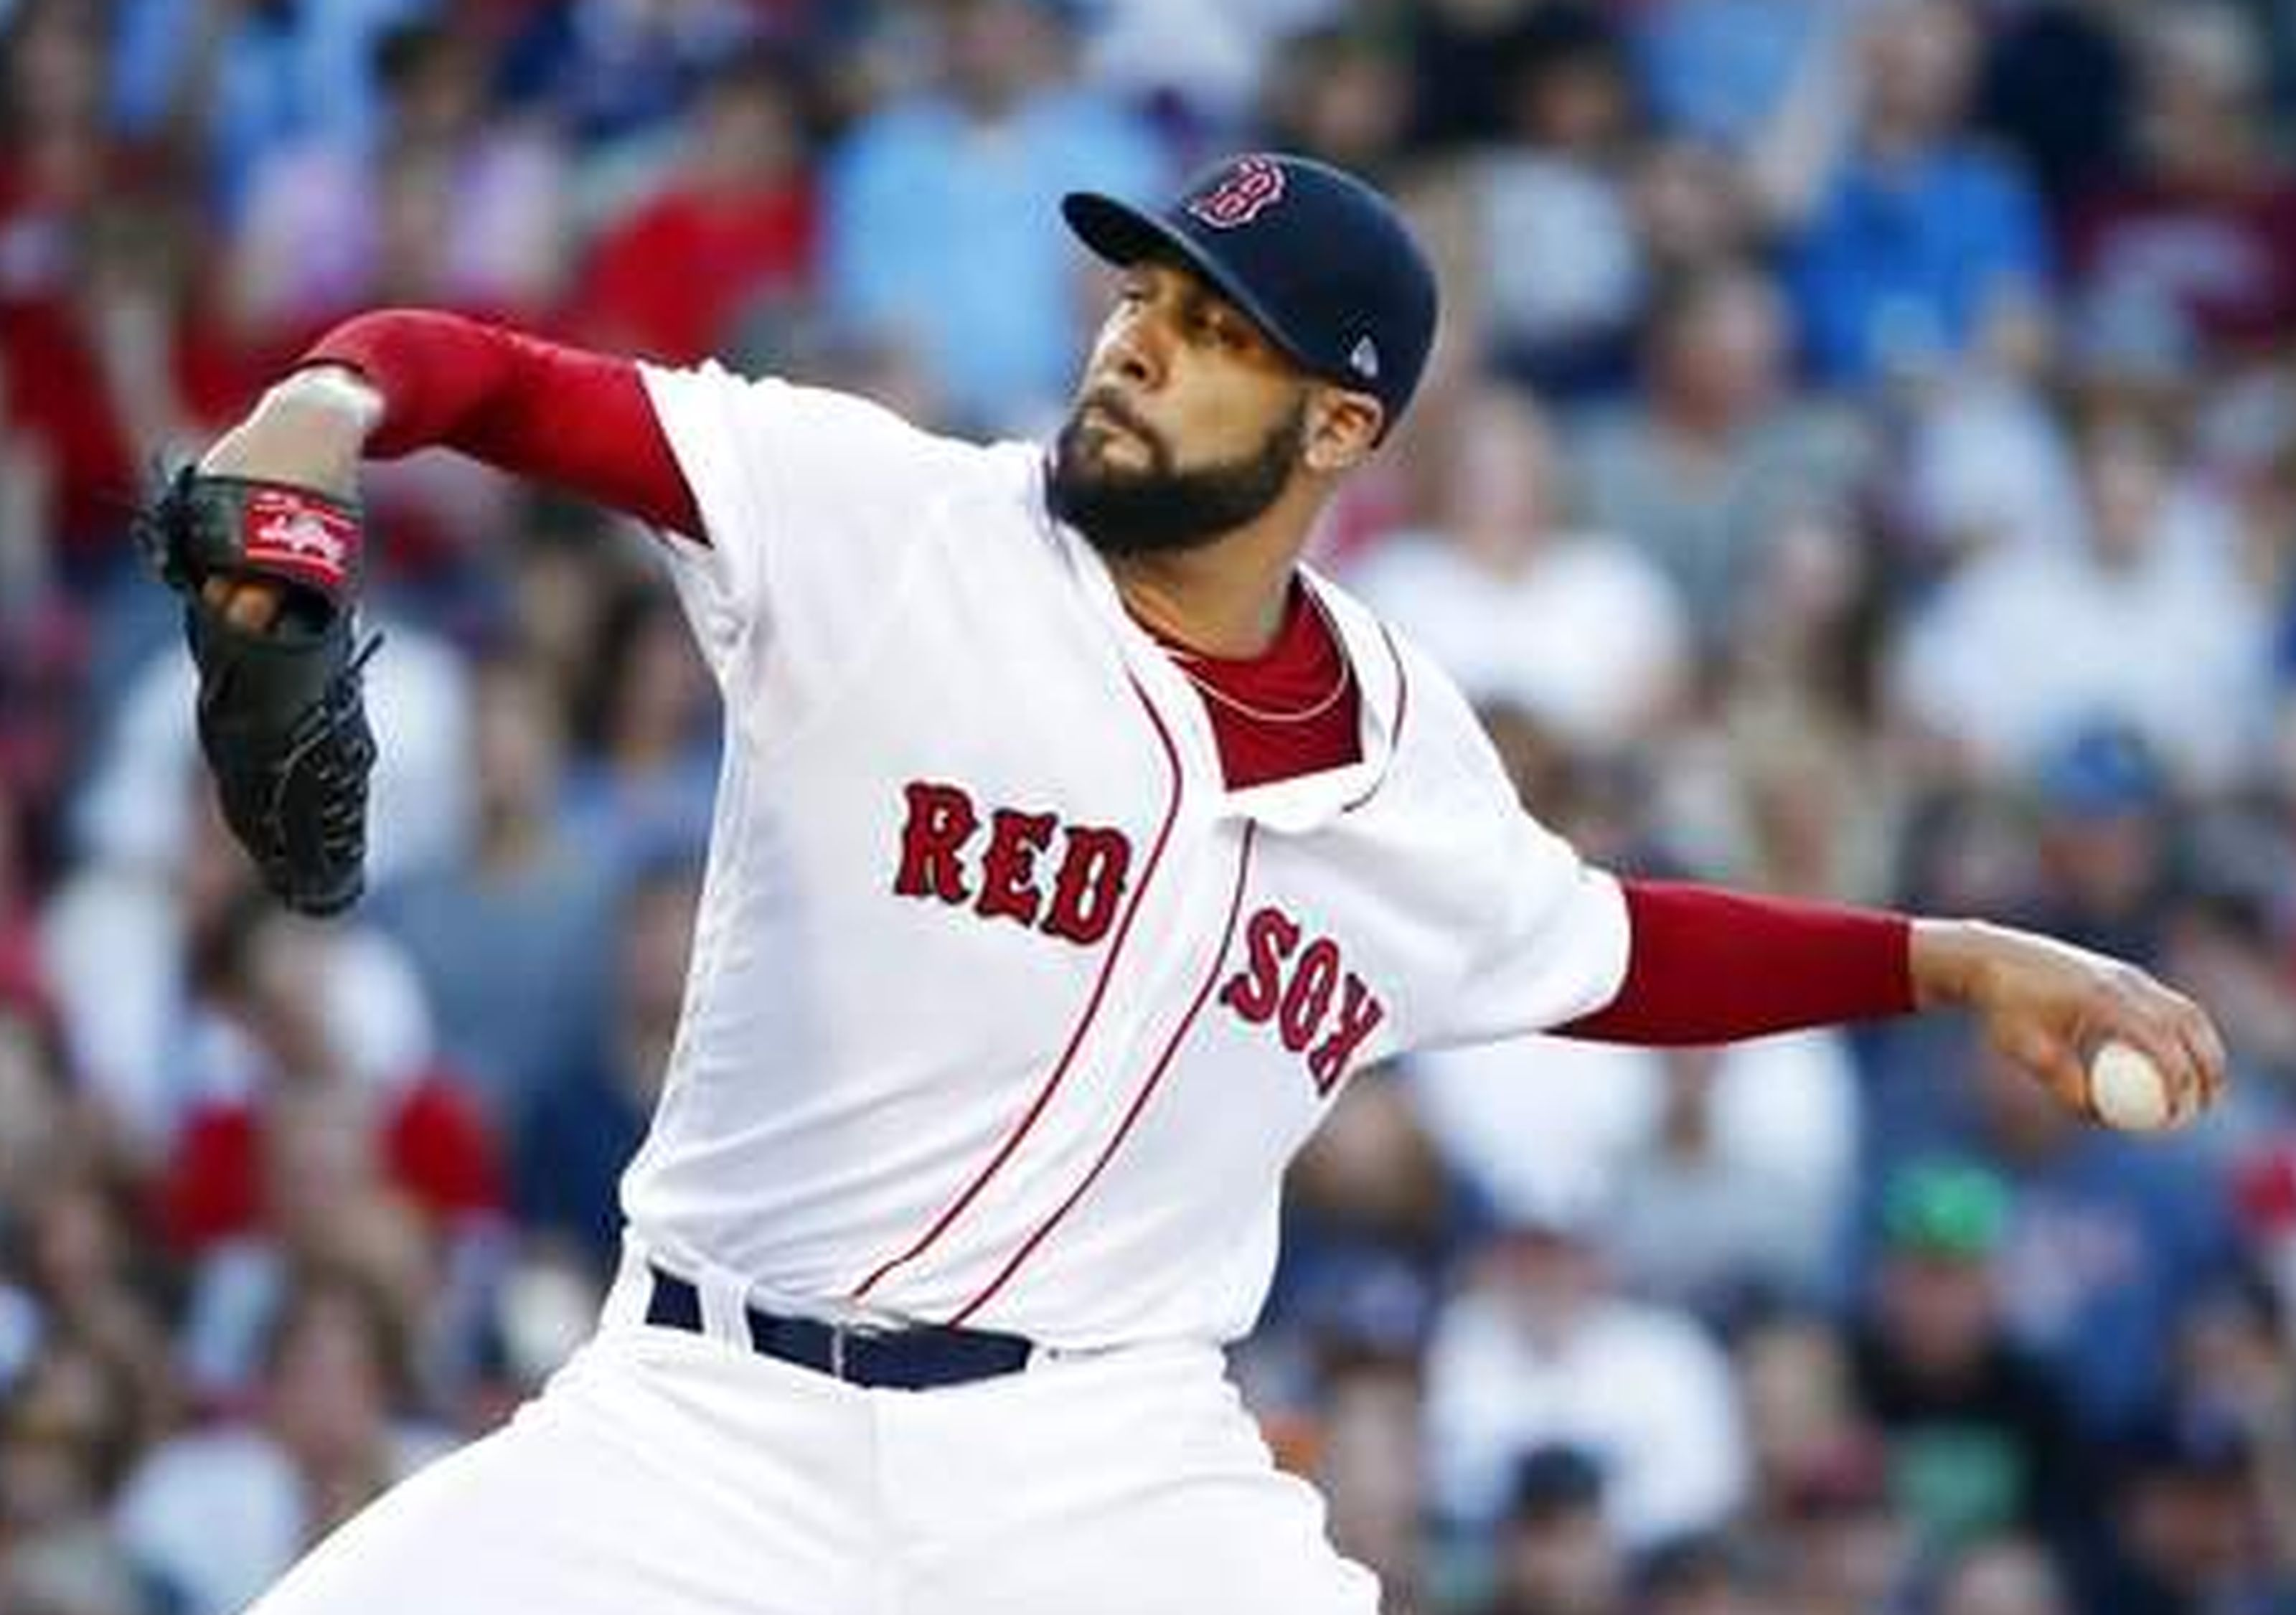 Red Sox right-hander David Price throws a pitch during the first inning of a game against the Los Angeles Angels at Fenway Park on Saturday night. AP WIREPHOTO/Michael Dwyer